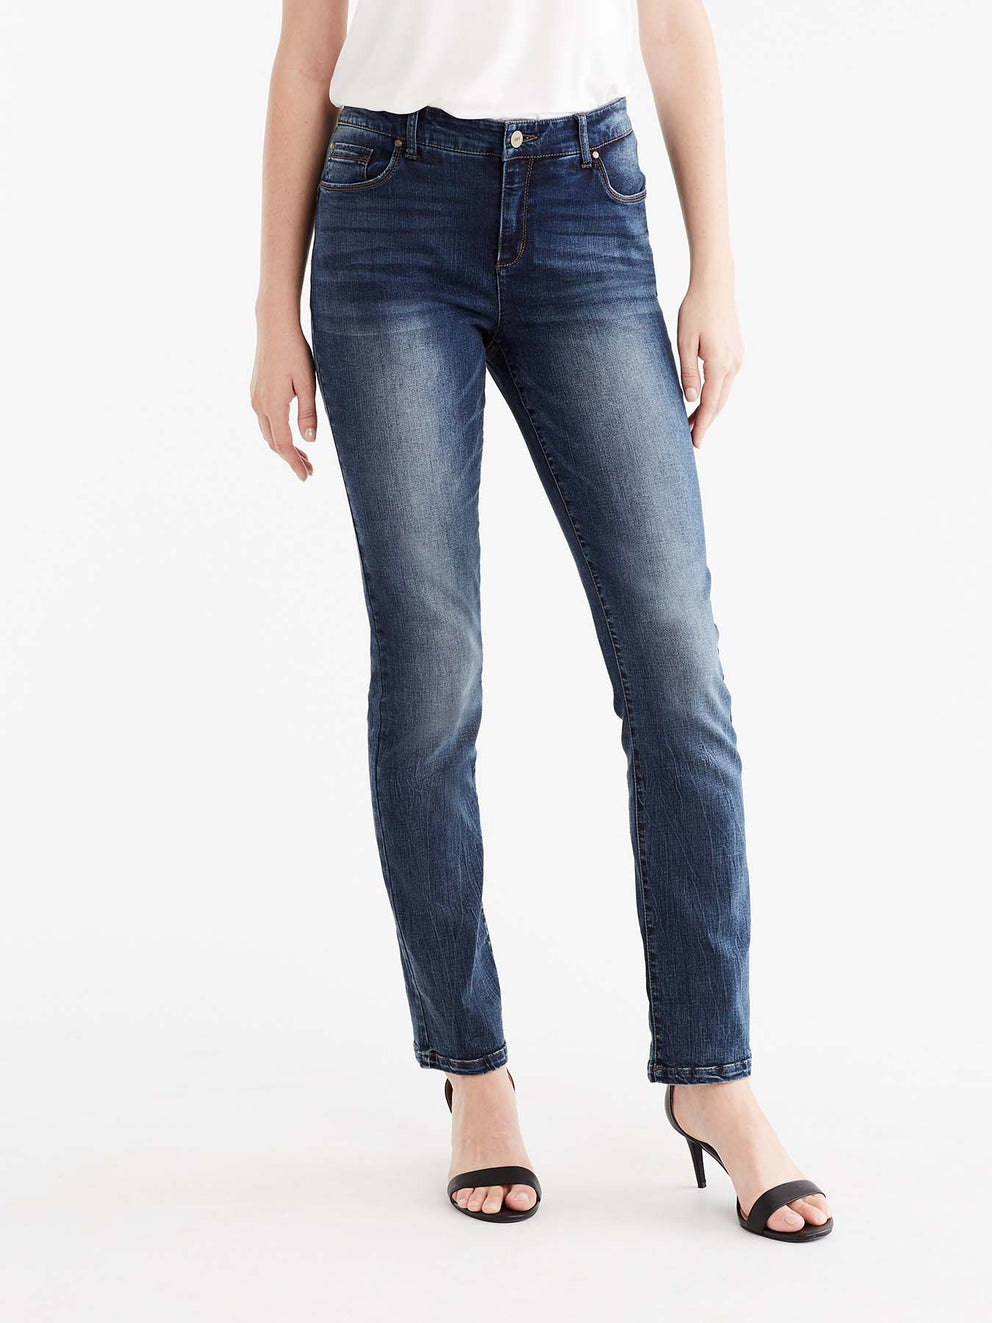 8a6a5c6892d65 Madison Slim Leg Jeans – Jones New York